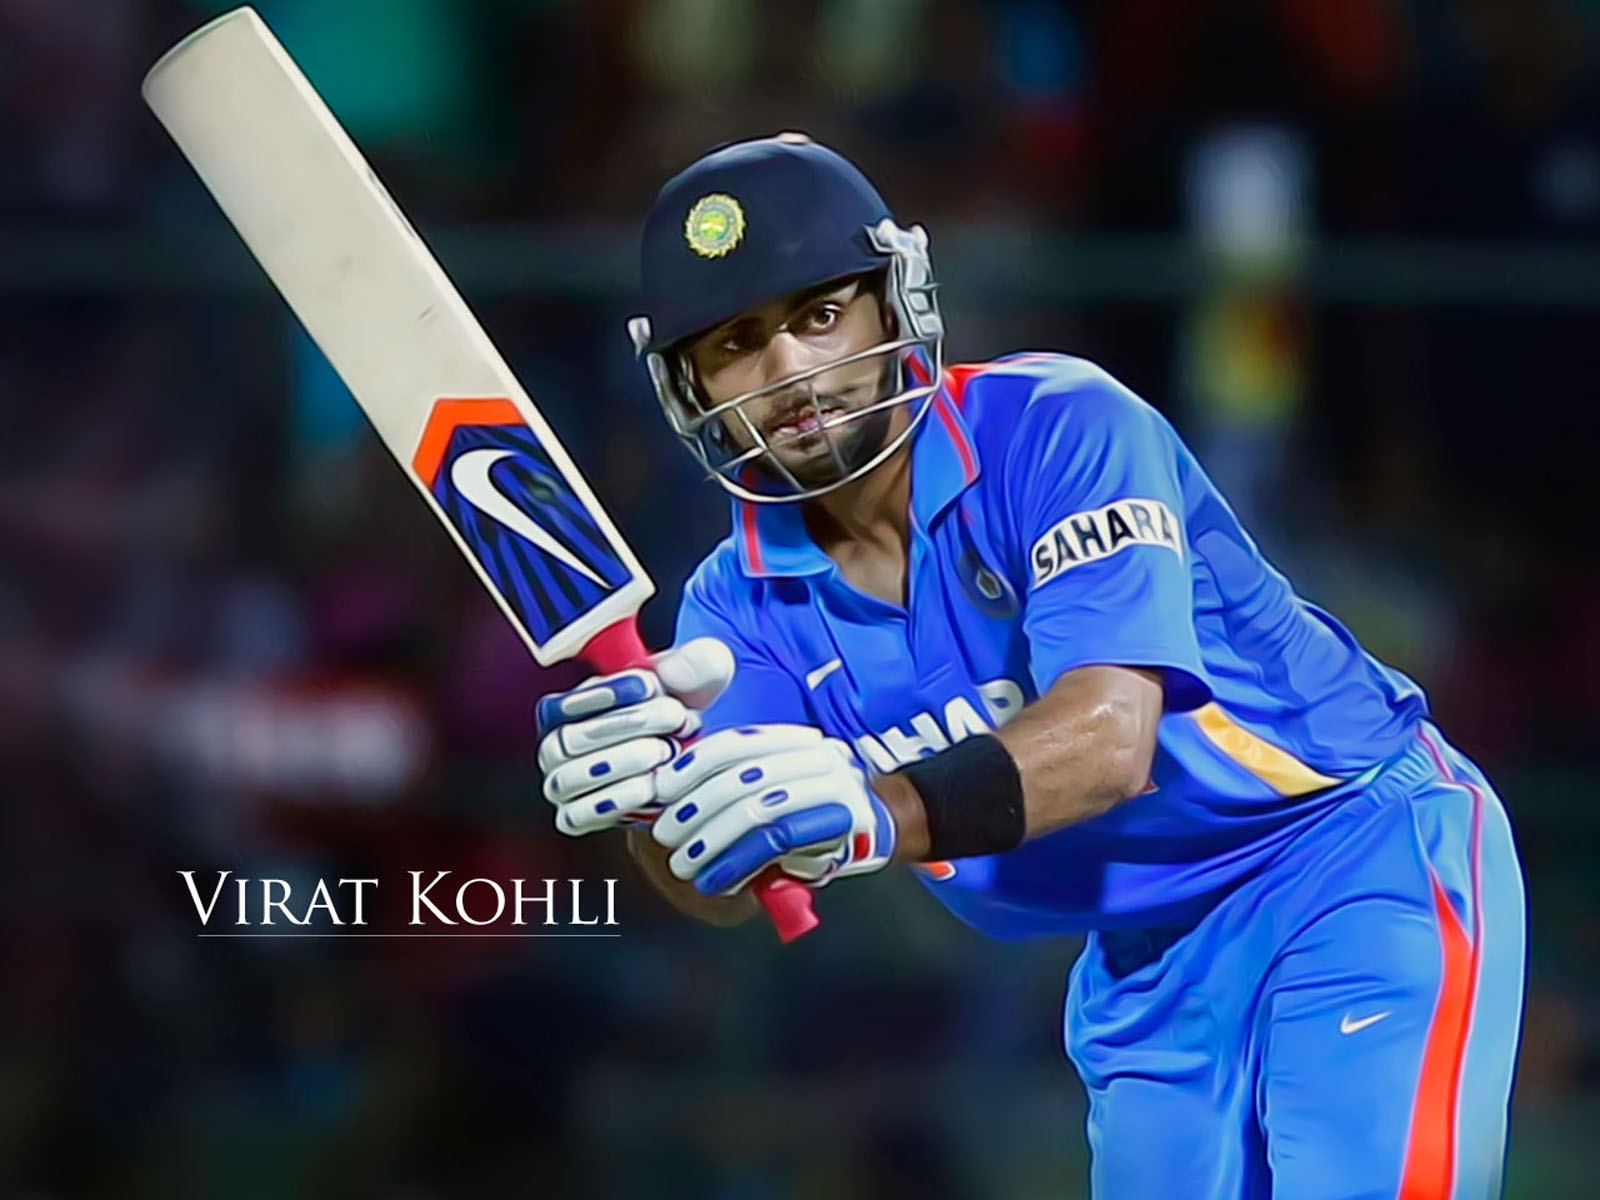 Virat Kohli Wallpapers Hd Car Wallpapers